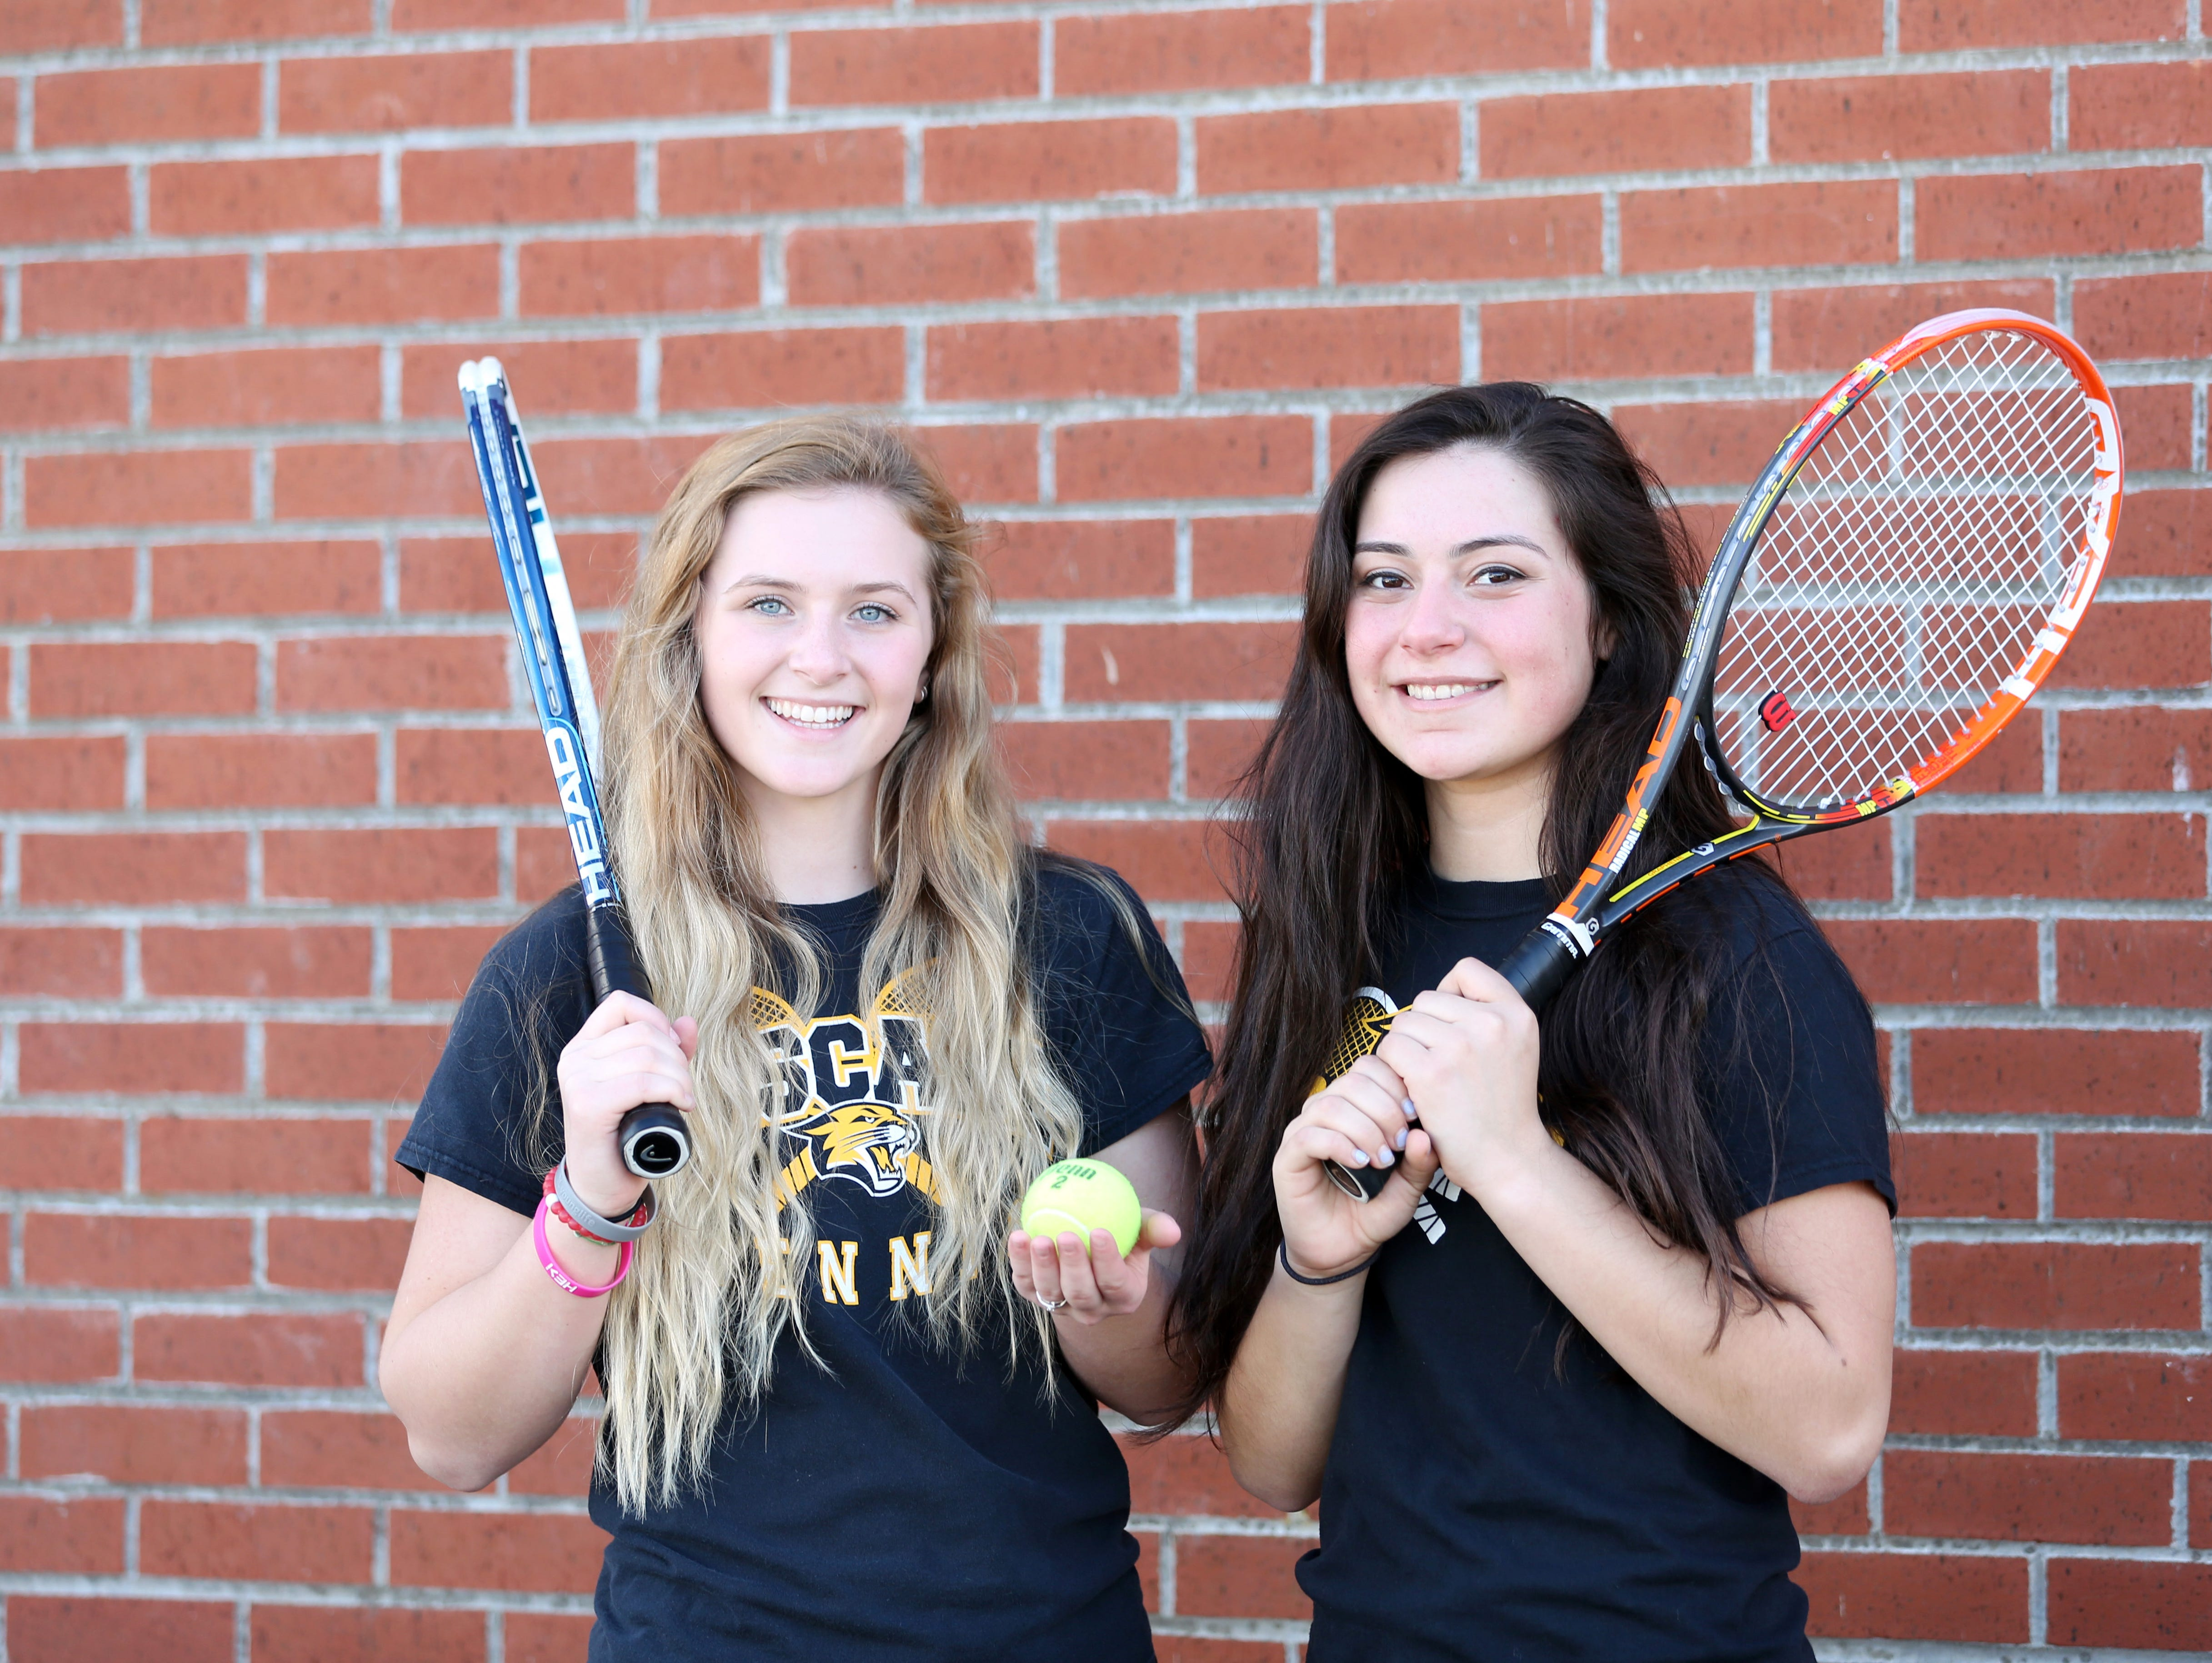 Doubles team Tori Lewis, left, and Jaja Osuna Sola are photographed during practice on Tuesday, March 21, 2017, at Cascade High School in Turner.